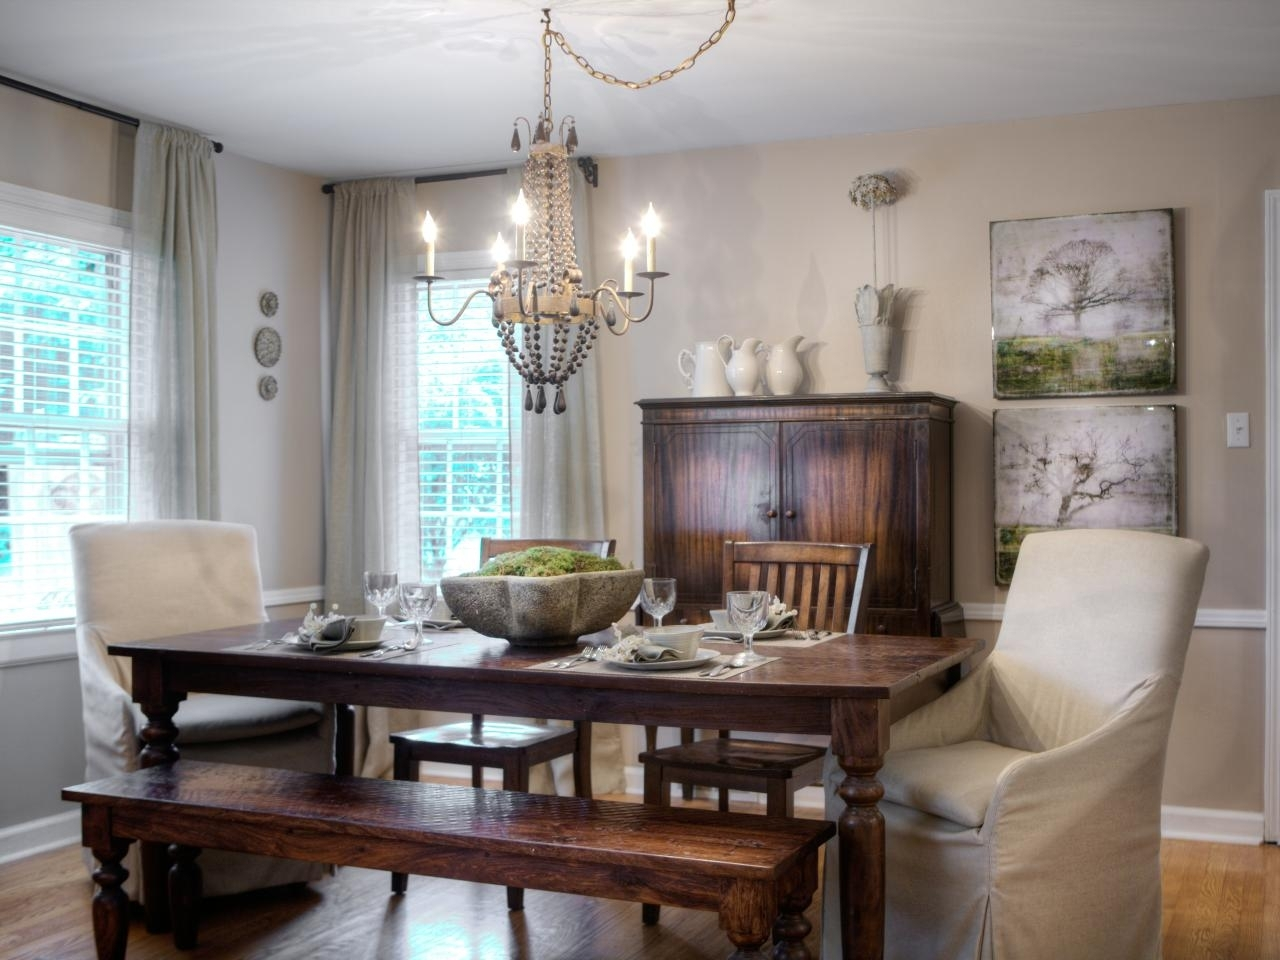 10 Pretty French Country Cottage Decorating Ideas %name 2020